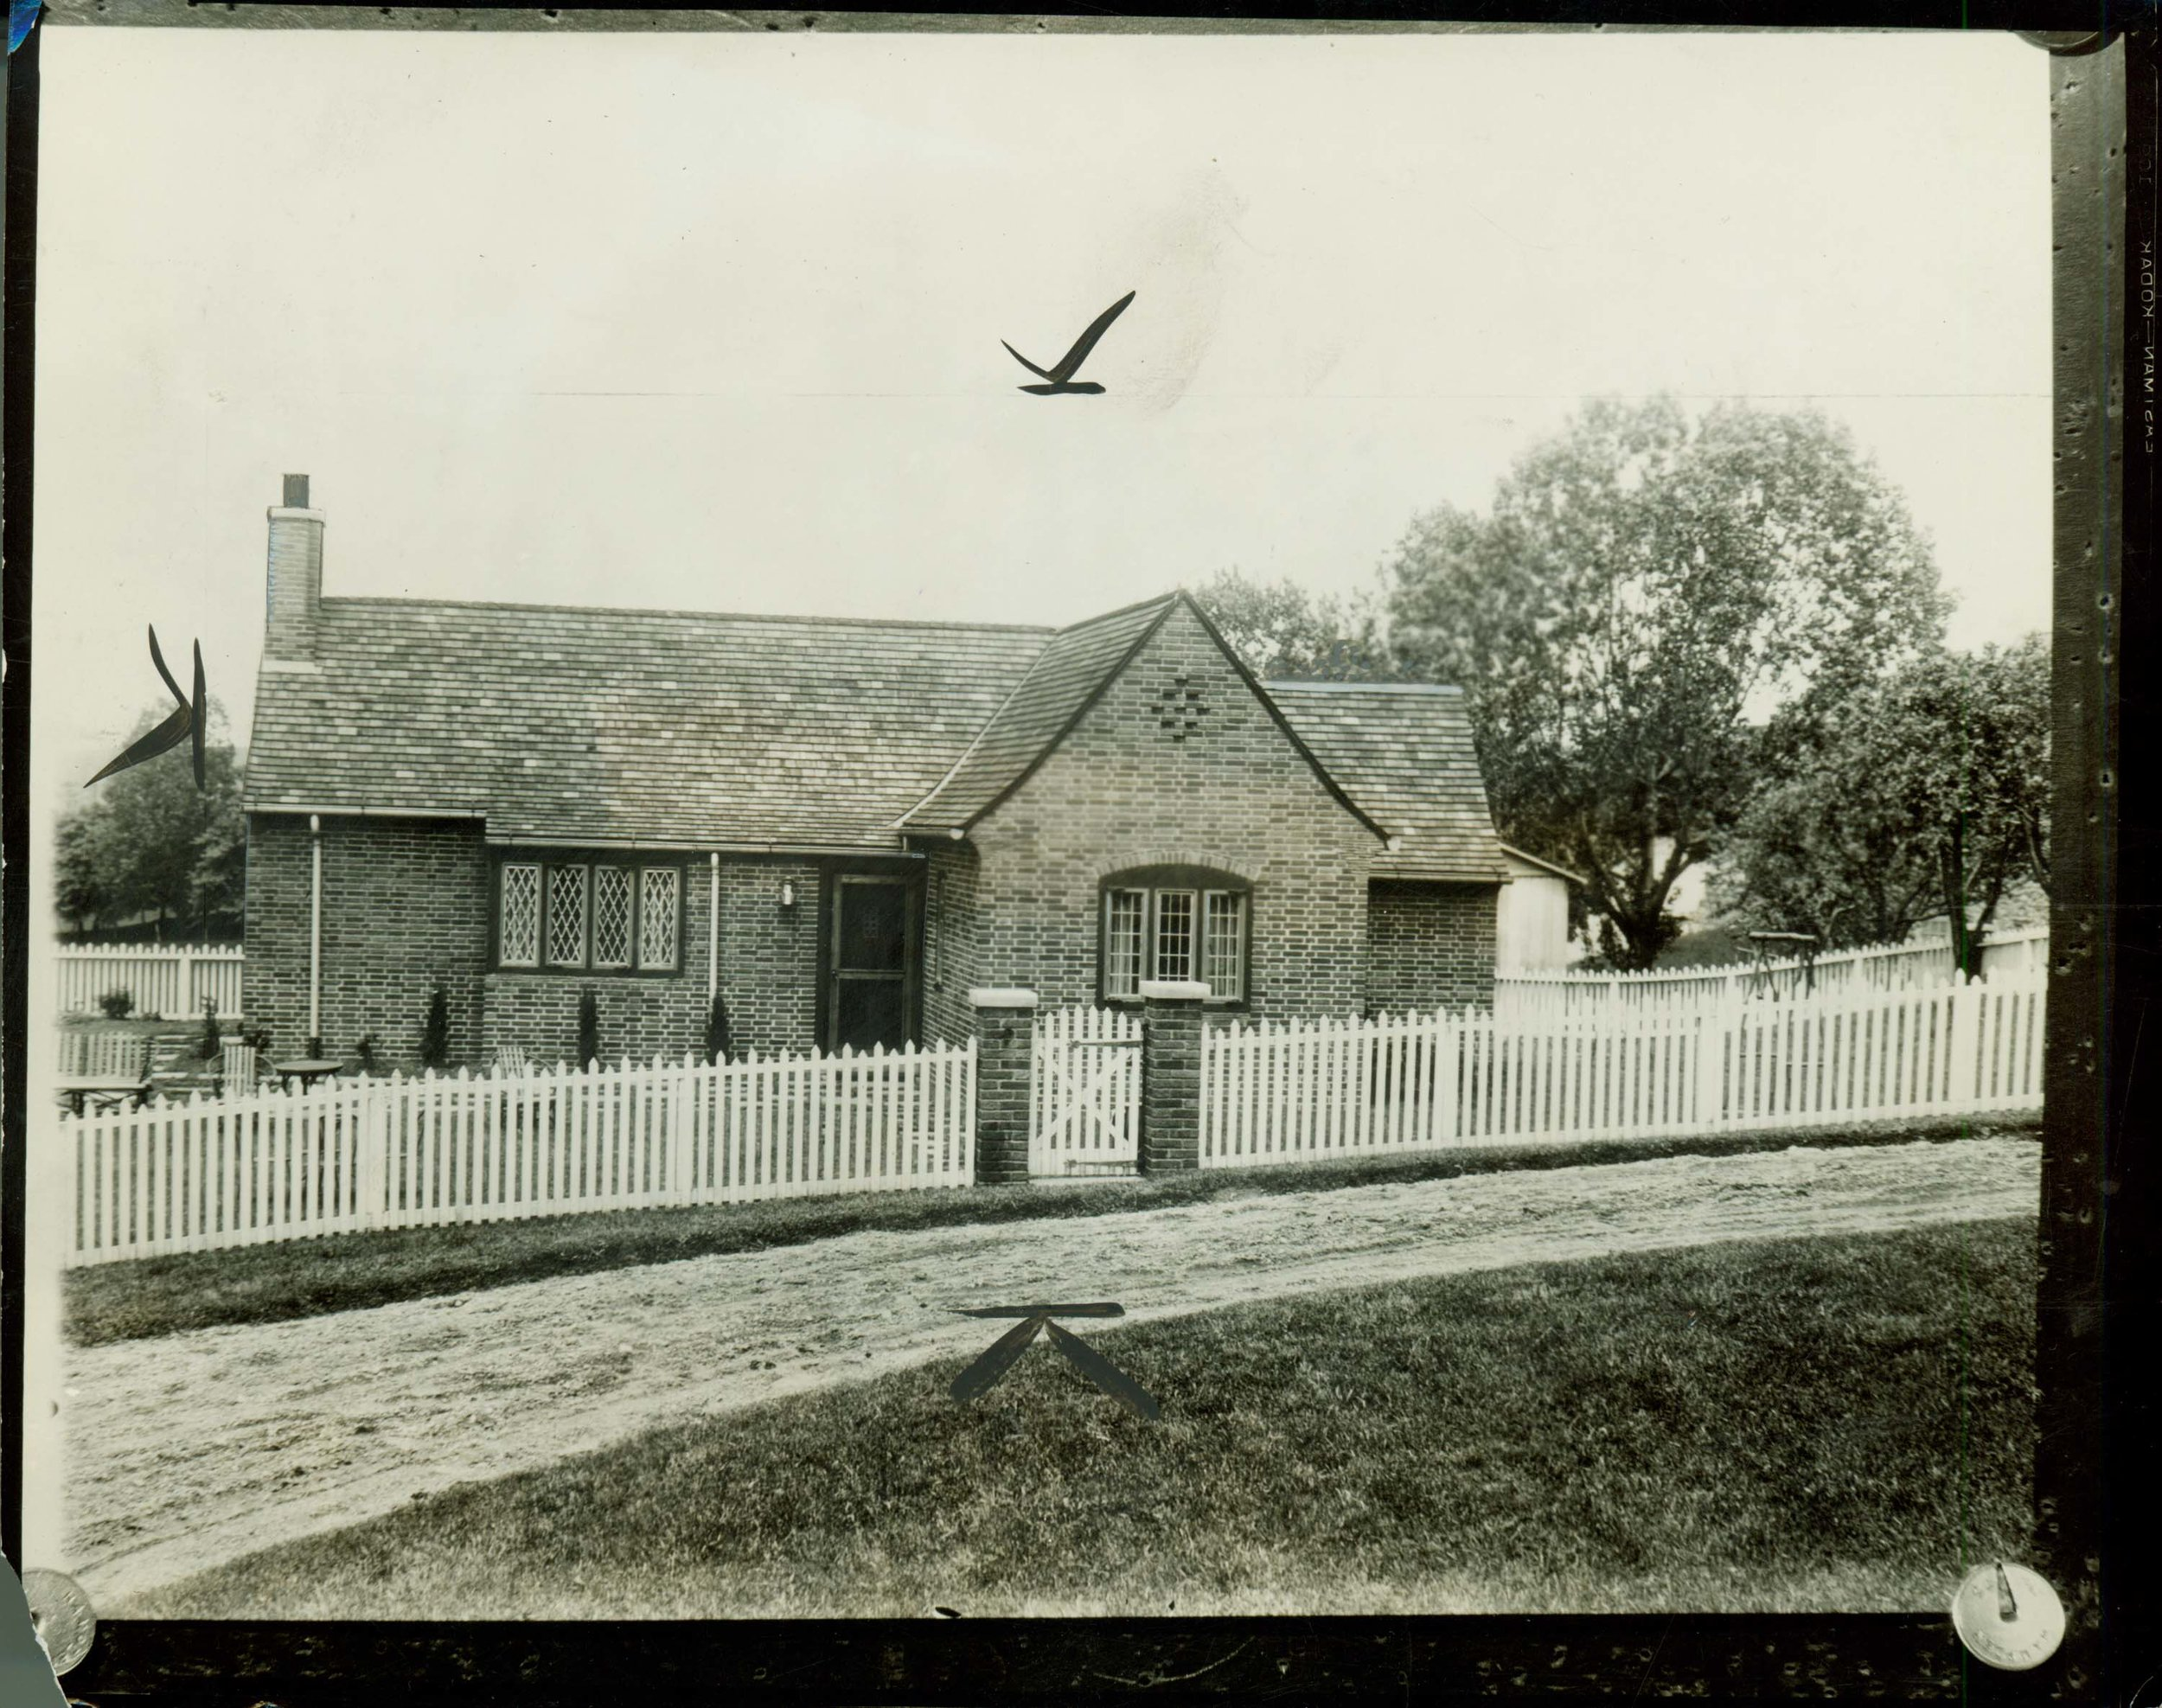 Figure 1. Knole Cottage (originally called Hilltop Lodge), on the grounds Meadow Brook Hall, Rochester, Michigan. Exterior, designed by William Kapp of Smith, Hinchman and Grylls, 1926. Photograph courtesy Meadow Brook Hall Archives.